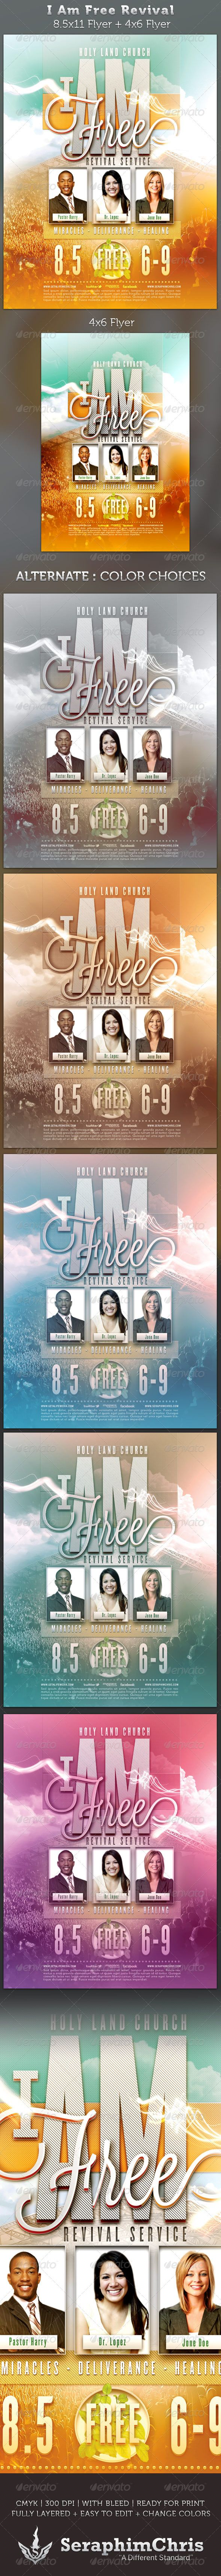 i am free revival flyer full page and 4x6 template pinterest